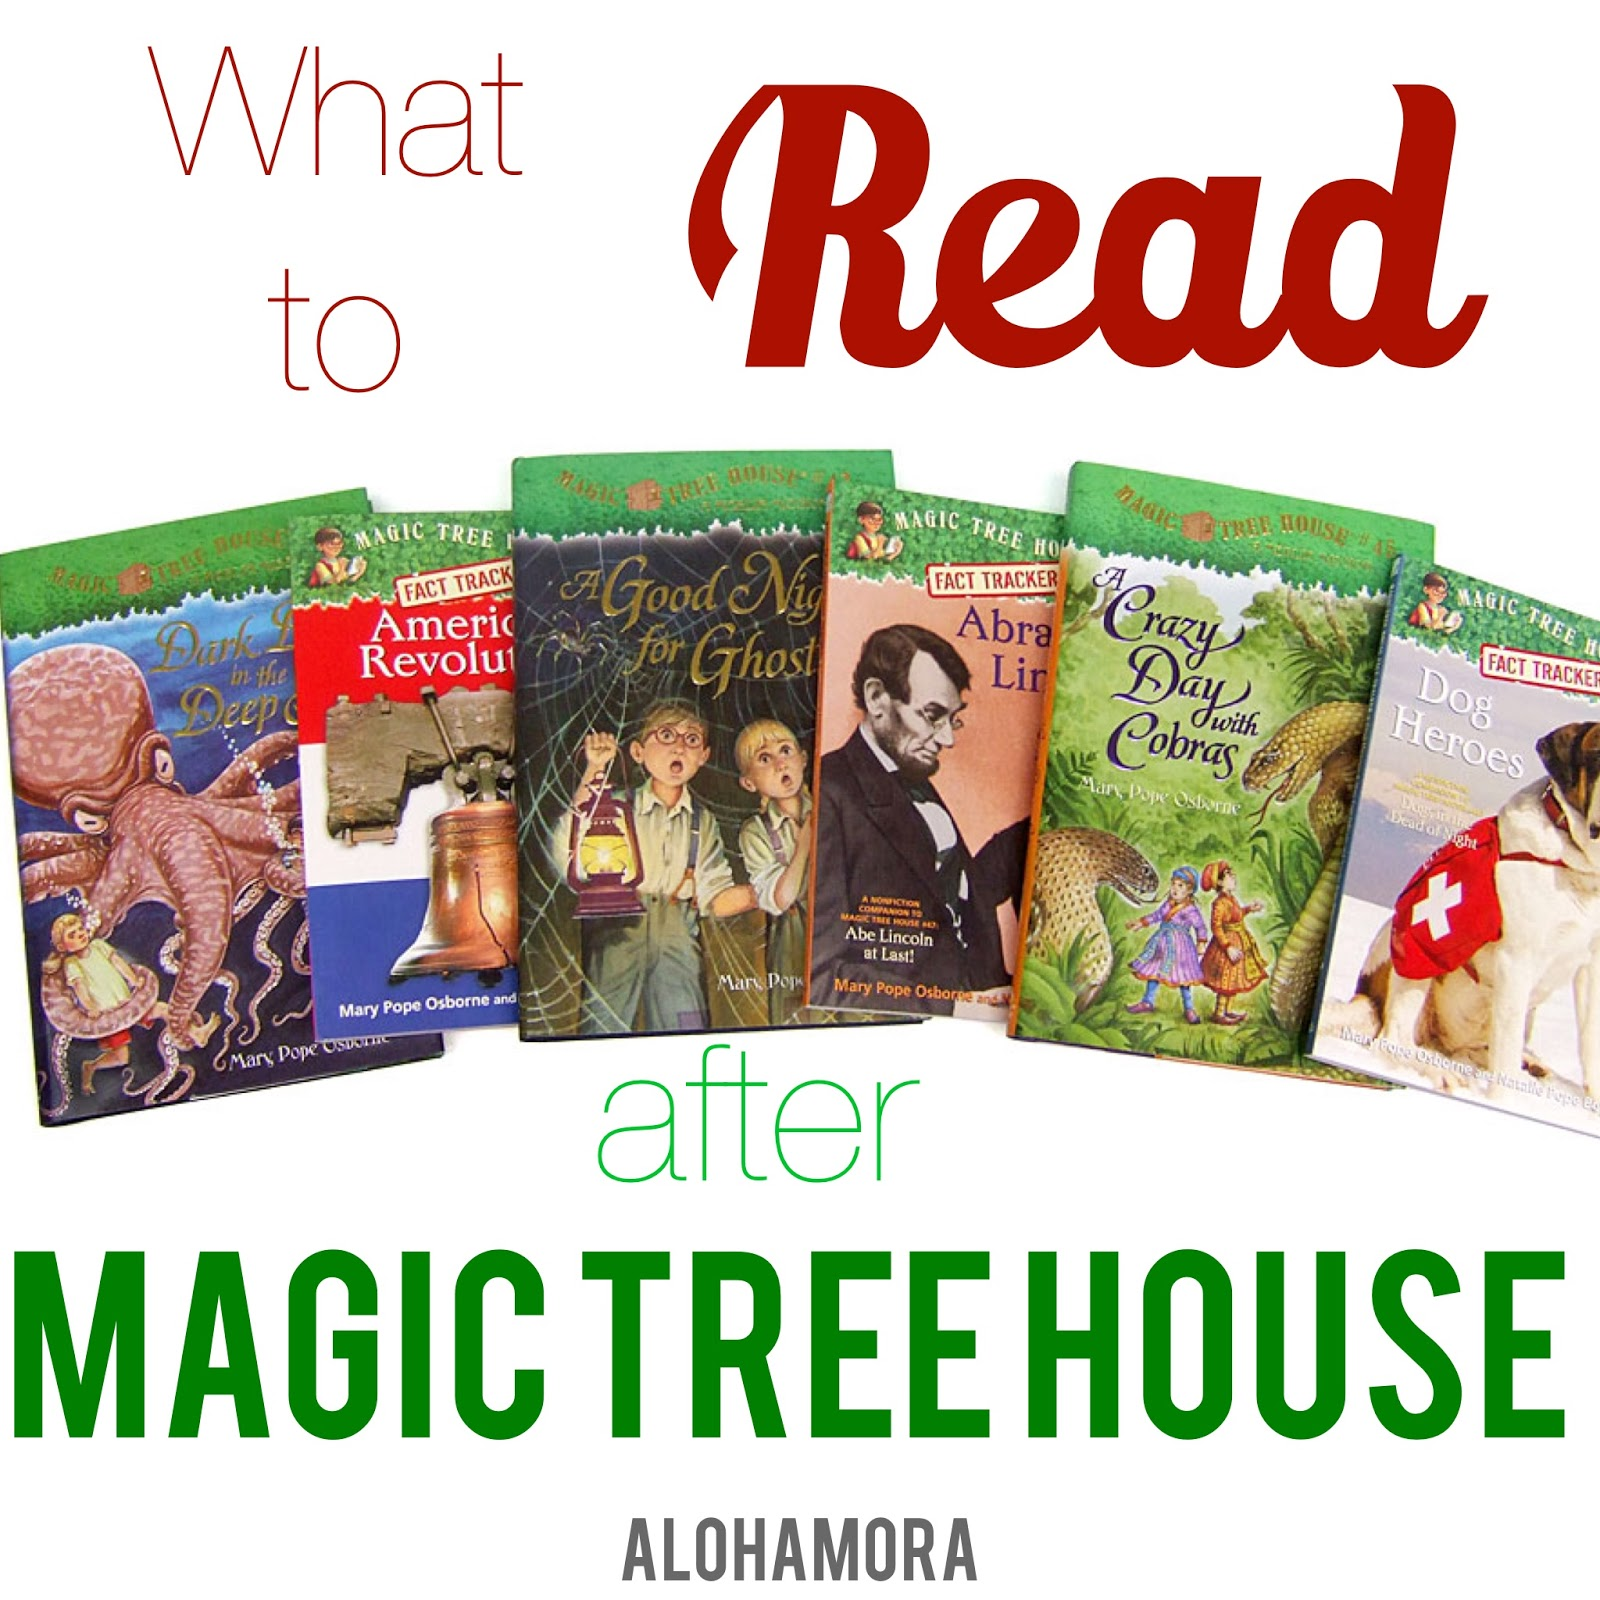 Alohamora Open A Book What To Read After Magic Tree House